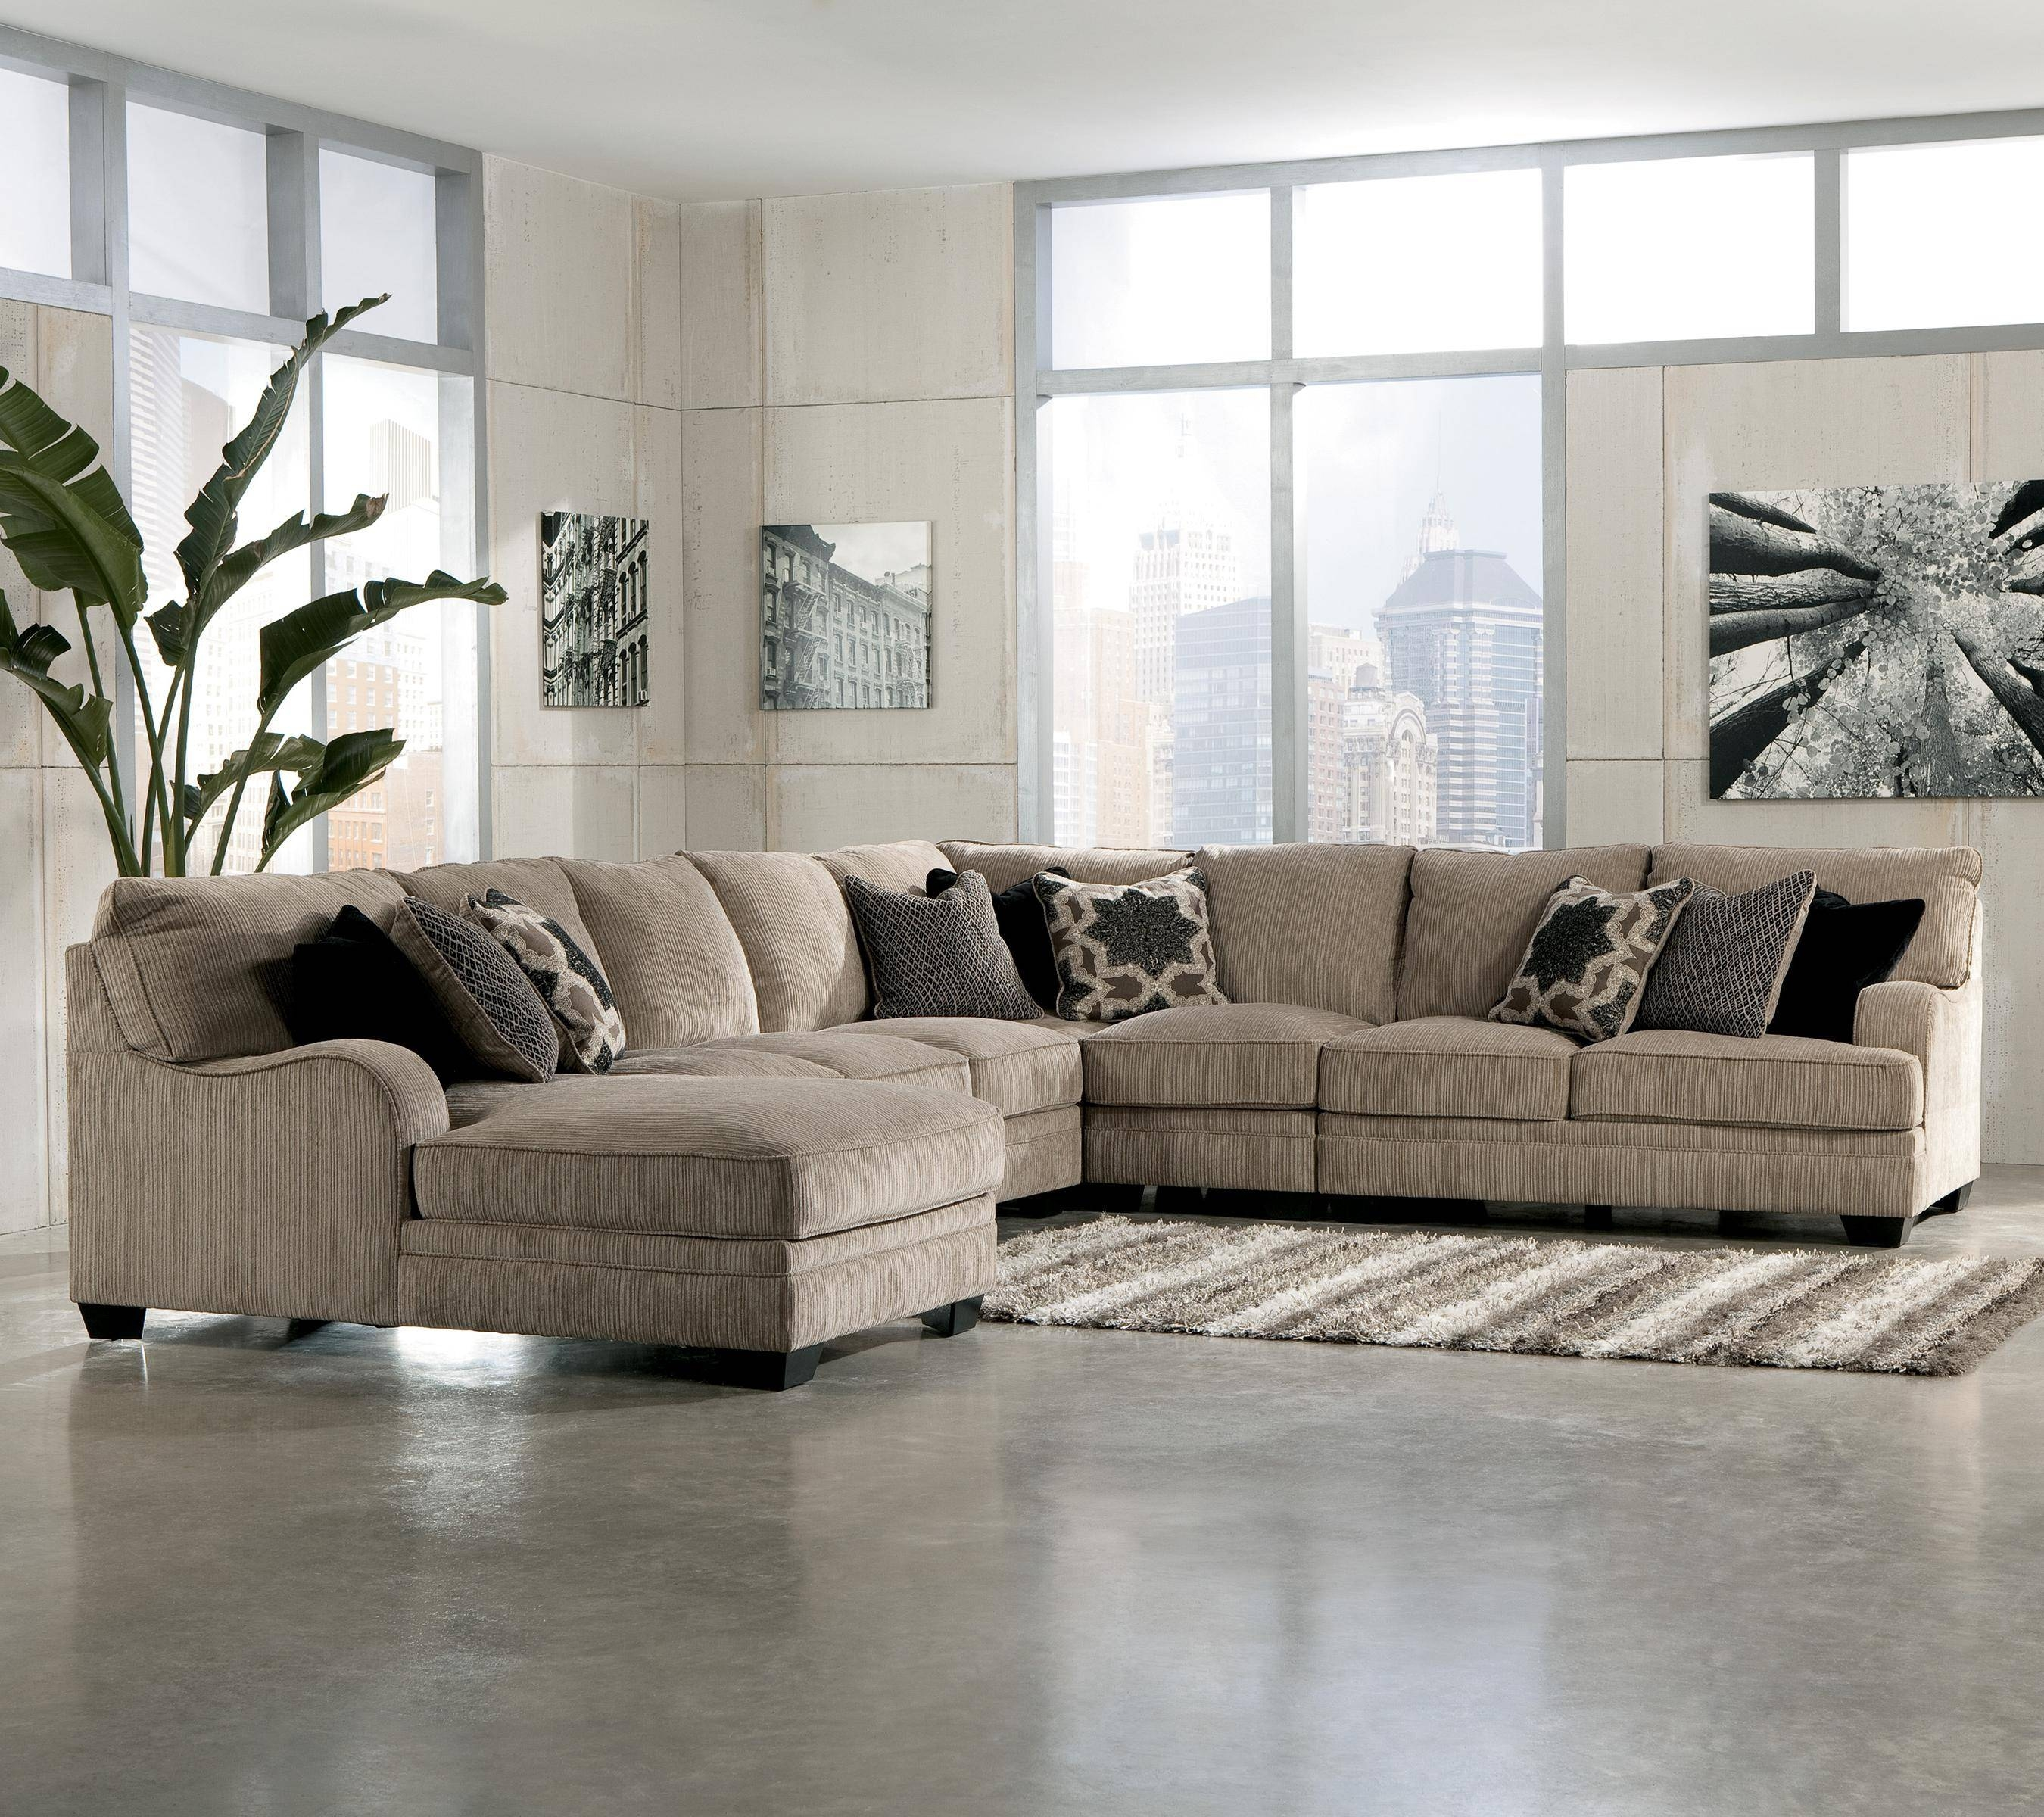 Sofa Chaise Lounge U203A Ashley Furniture Darcy. Slipcovers For regarding 3 Piece Sectional Sleeper Sofa (Image 25 of 30)